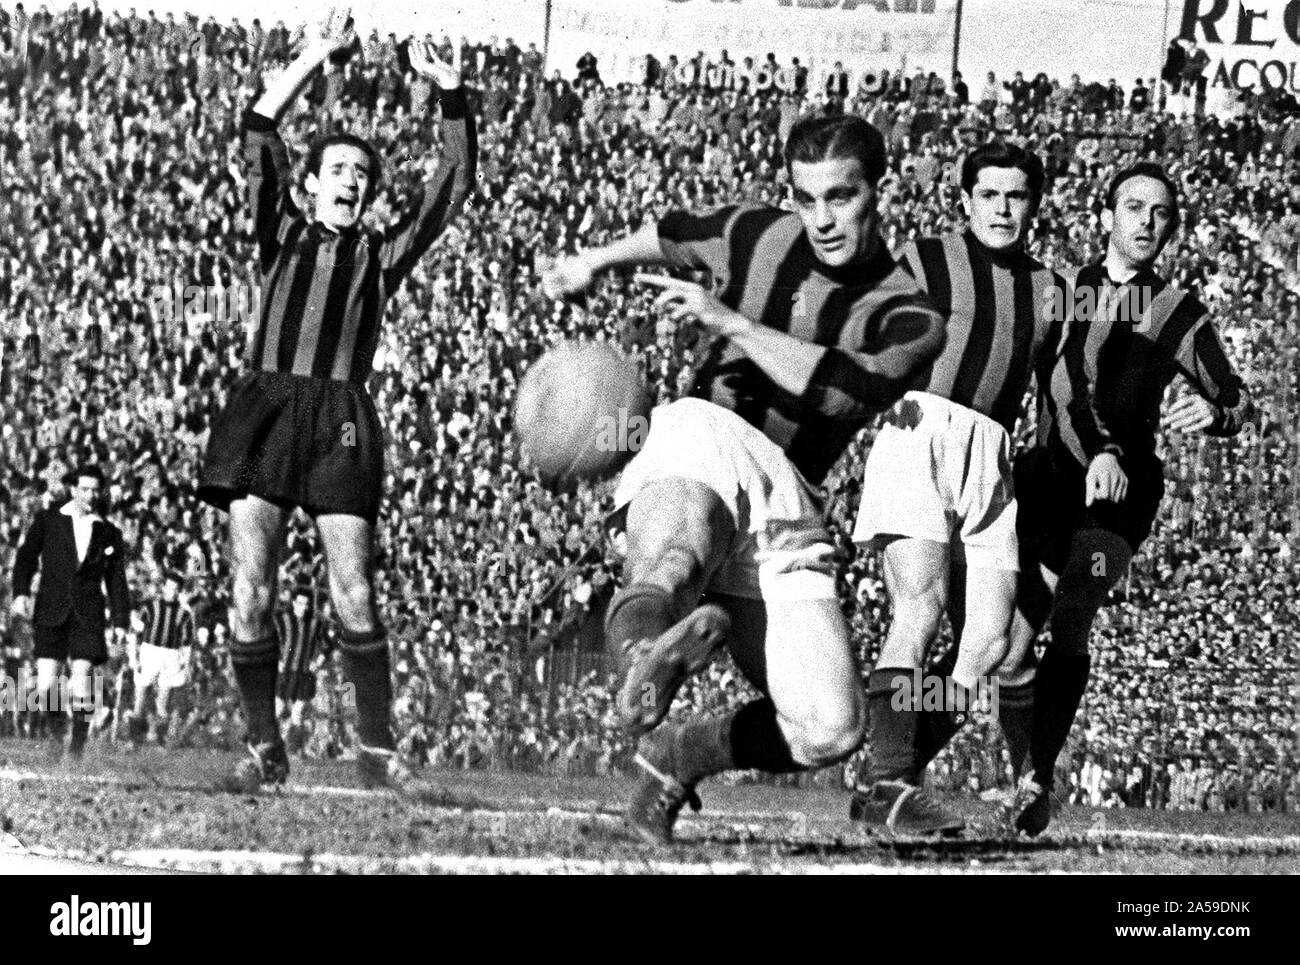 Milan, San Siro stadium, 25 March 1951. Rossonero Gunnar Nordahl (center) scored the decisive goal during the Milan derby between Inter and Milan (0-1) valid for the 29th matchday of the Italian Serie A 1950- 51. Stock Photo